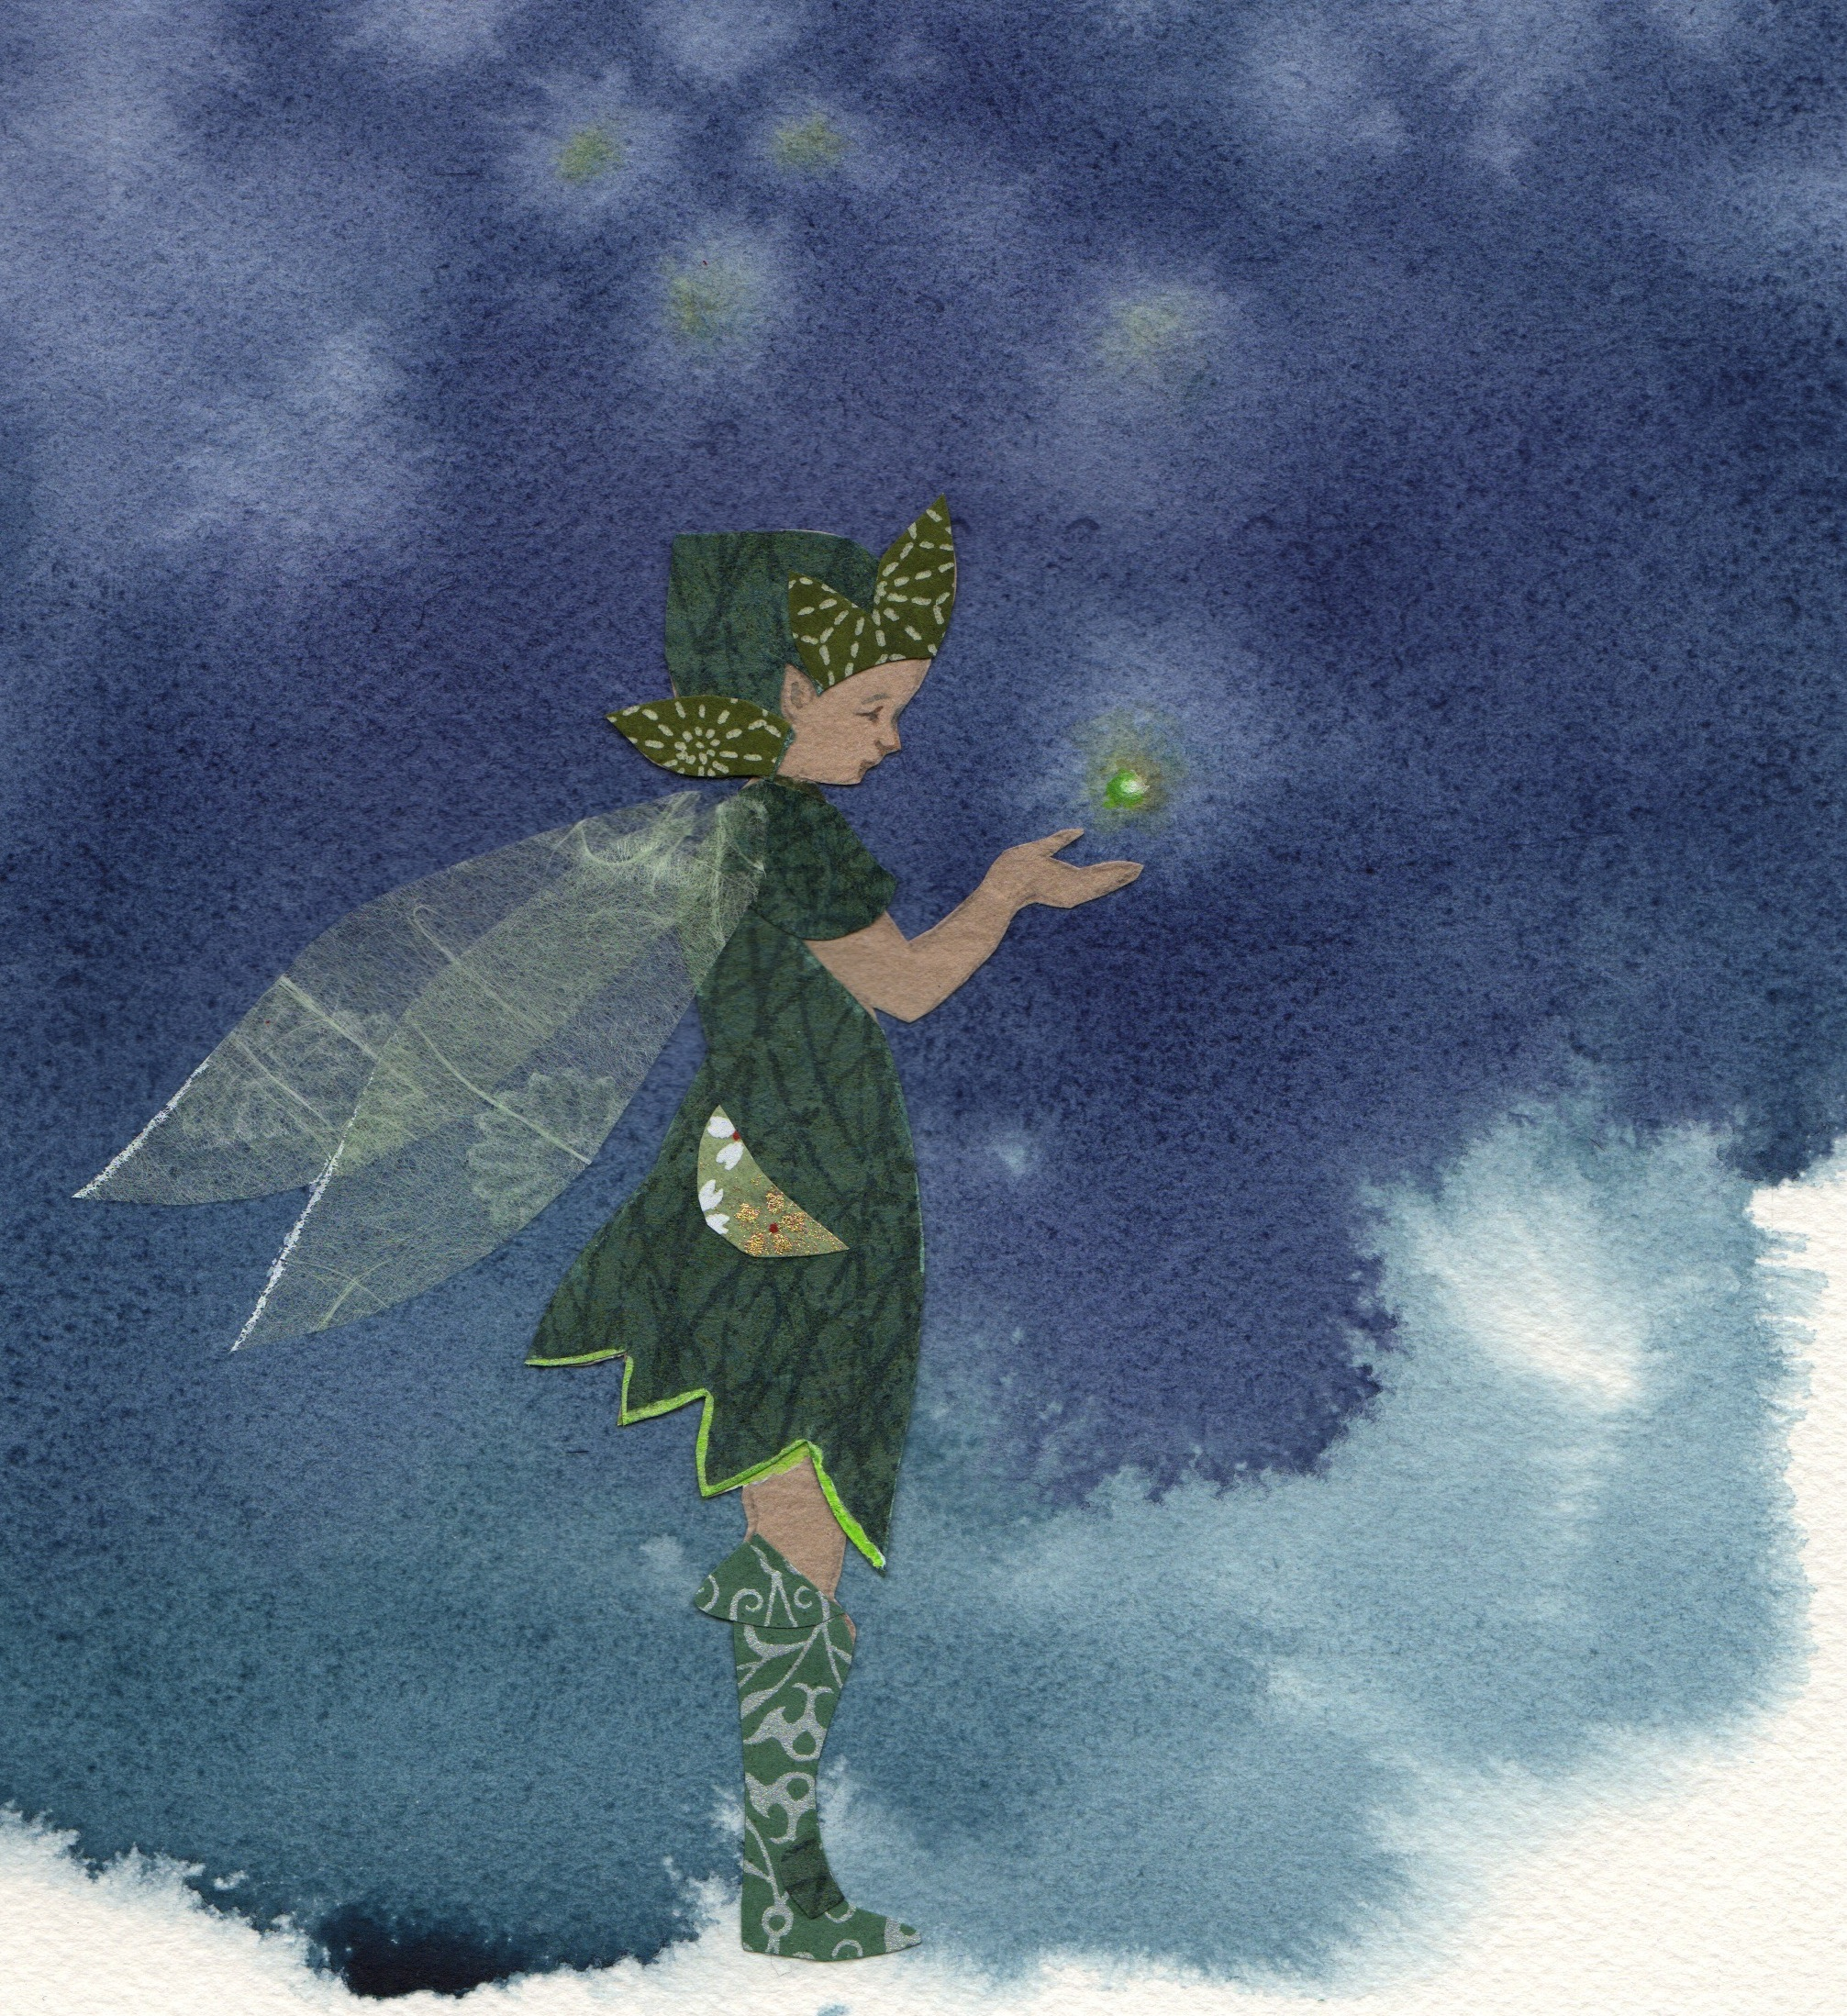 'Where do fireflies come from?' an illustration by Ella Lapointe